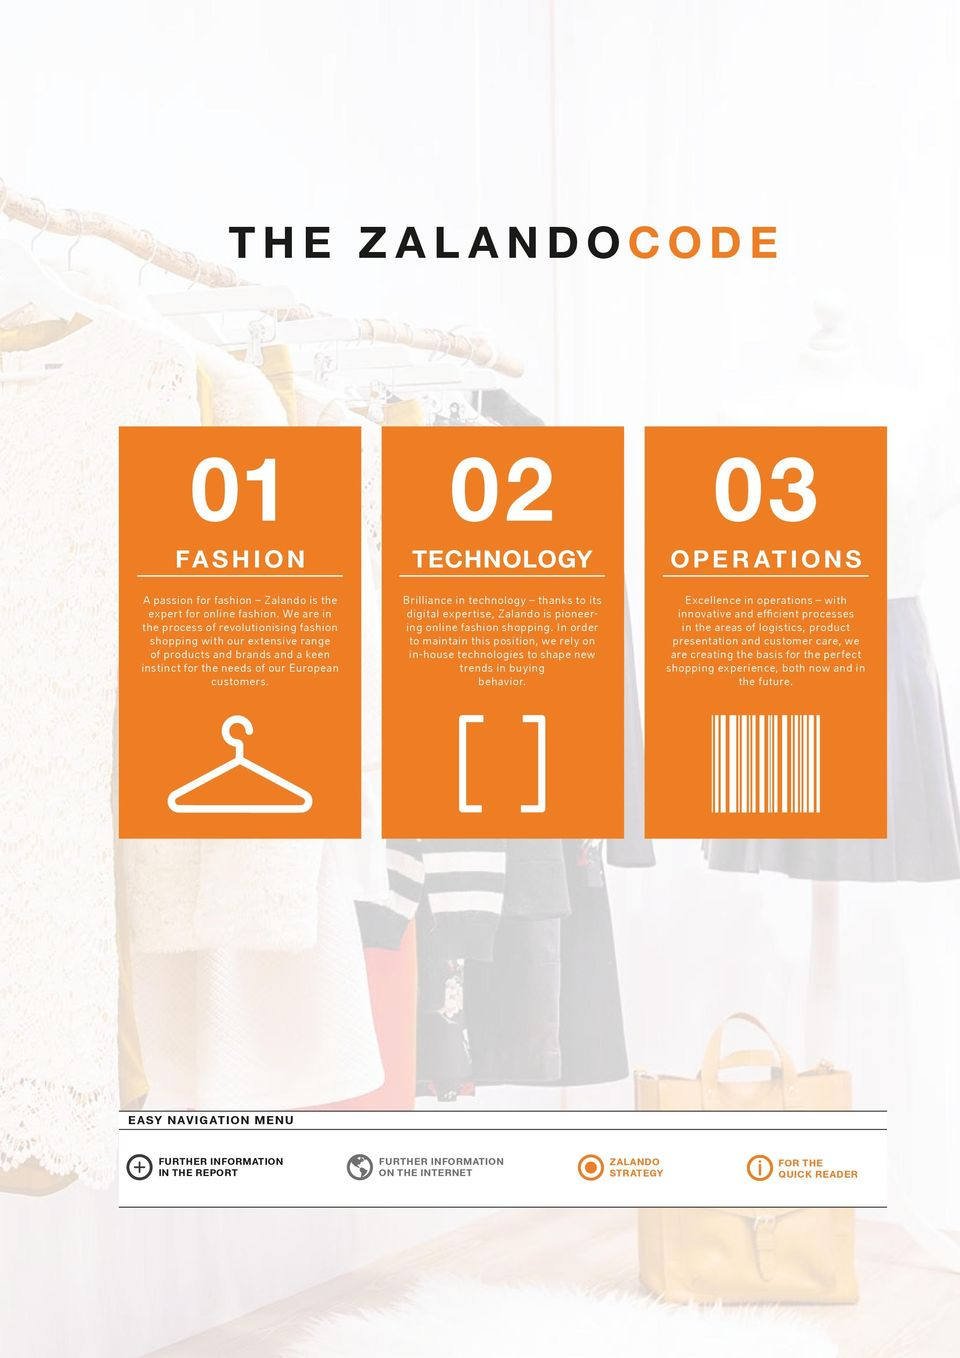 50426cbd 02 TECHNOLOGY Brilliance in technology thanks to its digital expertise,  Zalando is pioneering online fashion